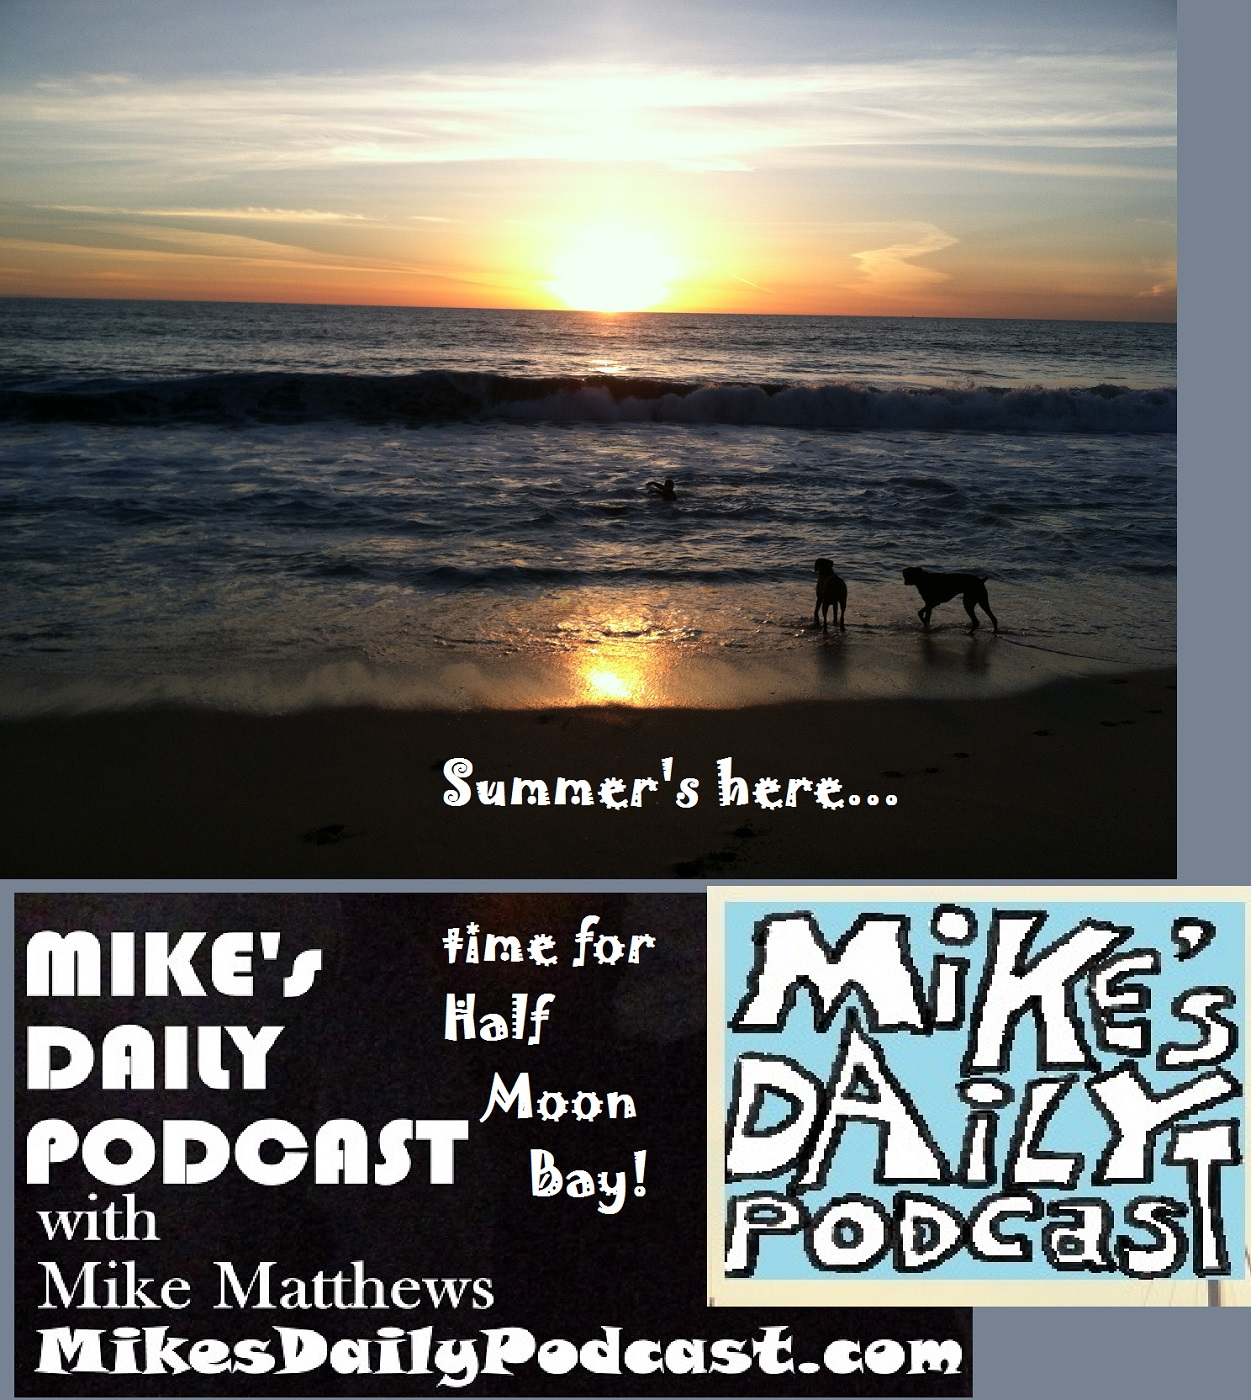 MIKEs DAILY PODCAST 1101 Half Moon Bay sunset dogs